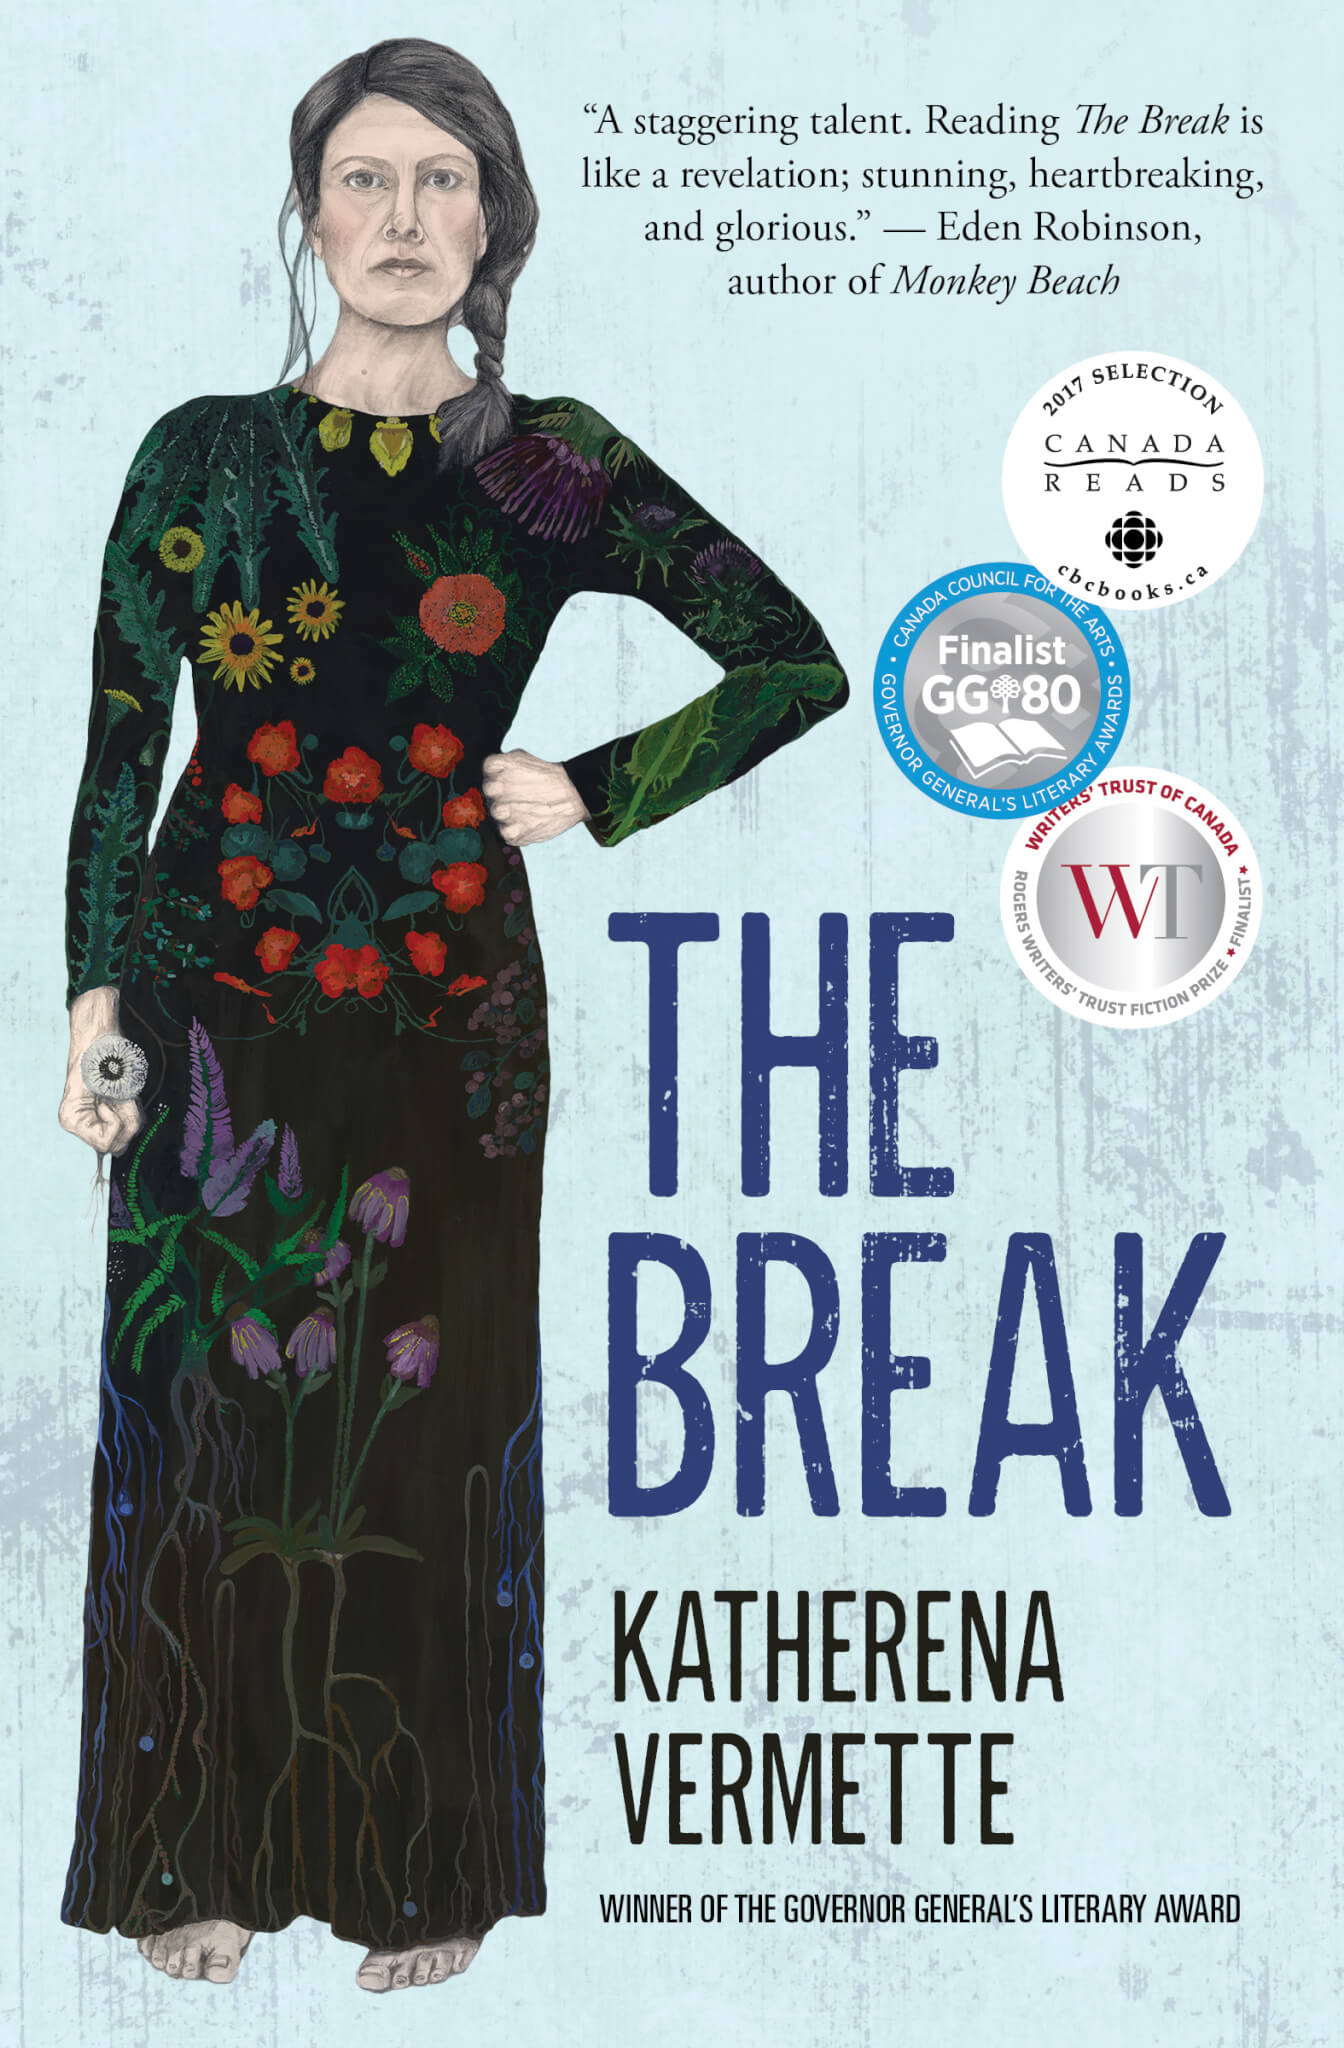 Book jacket for The Break